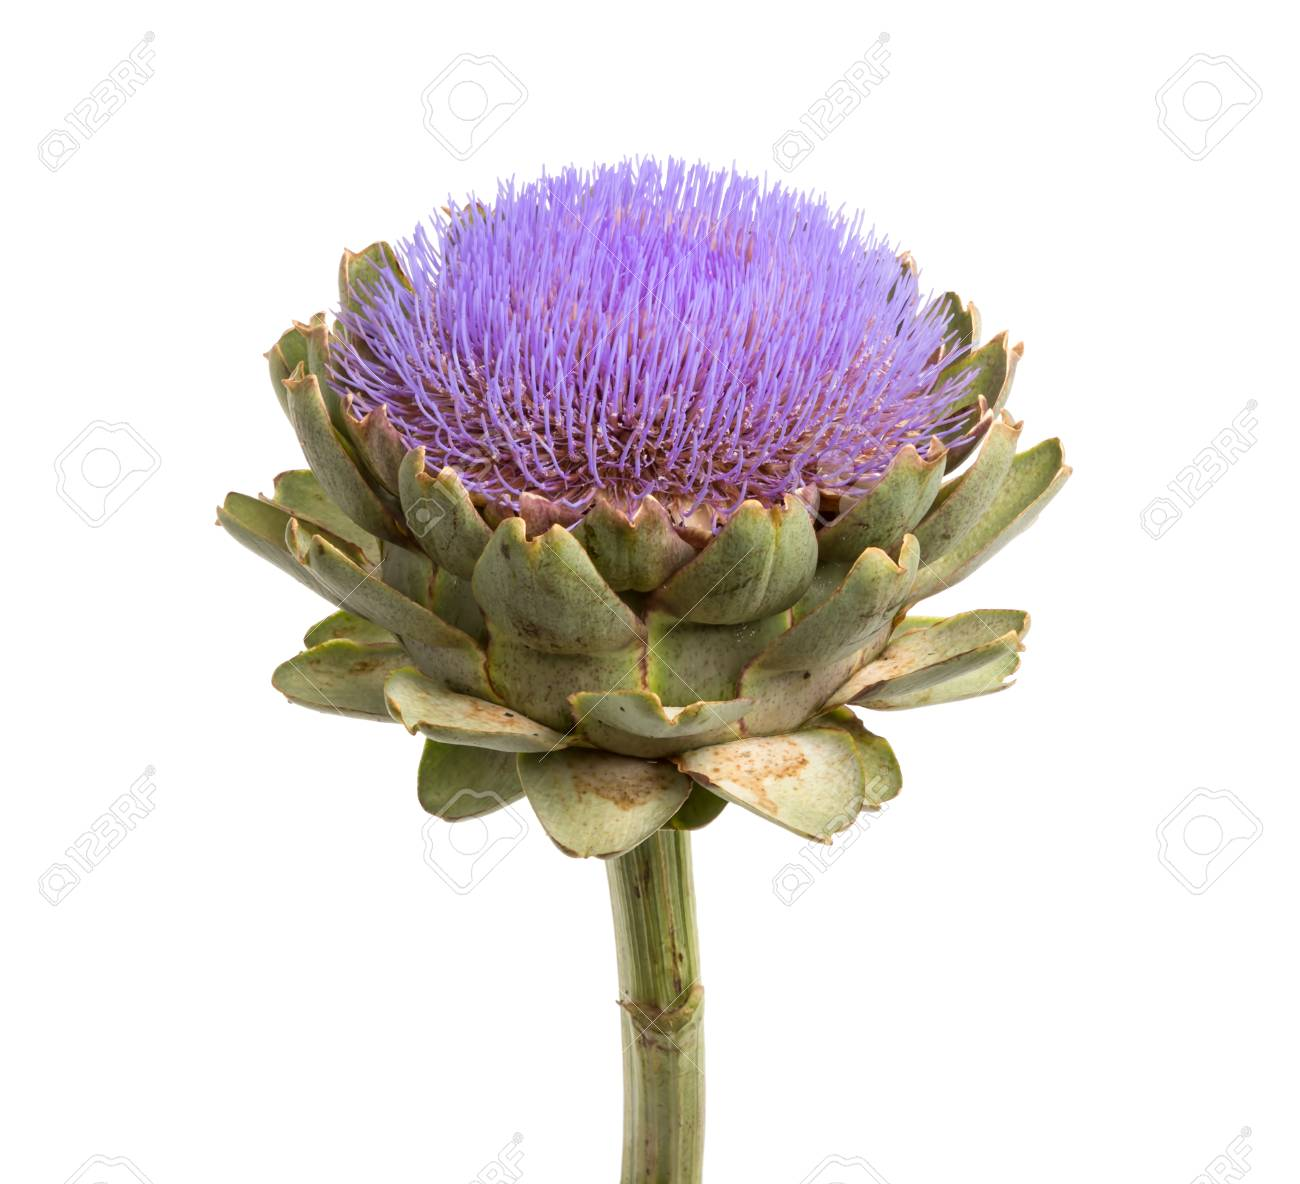 Isolated artichoke at white backgound - 22982181